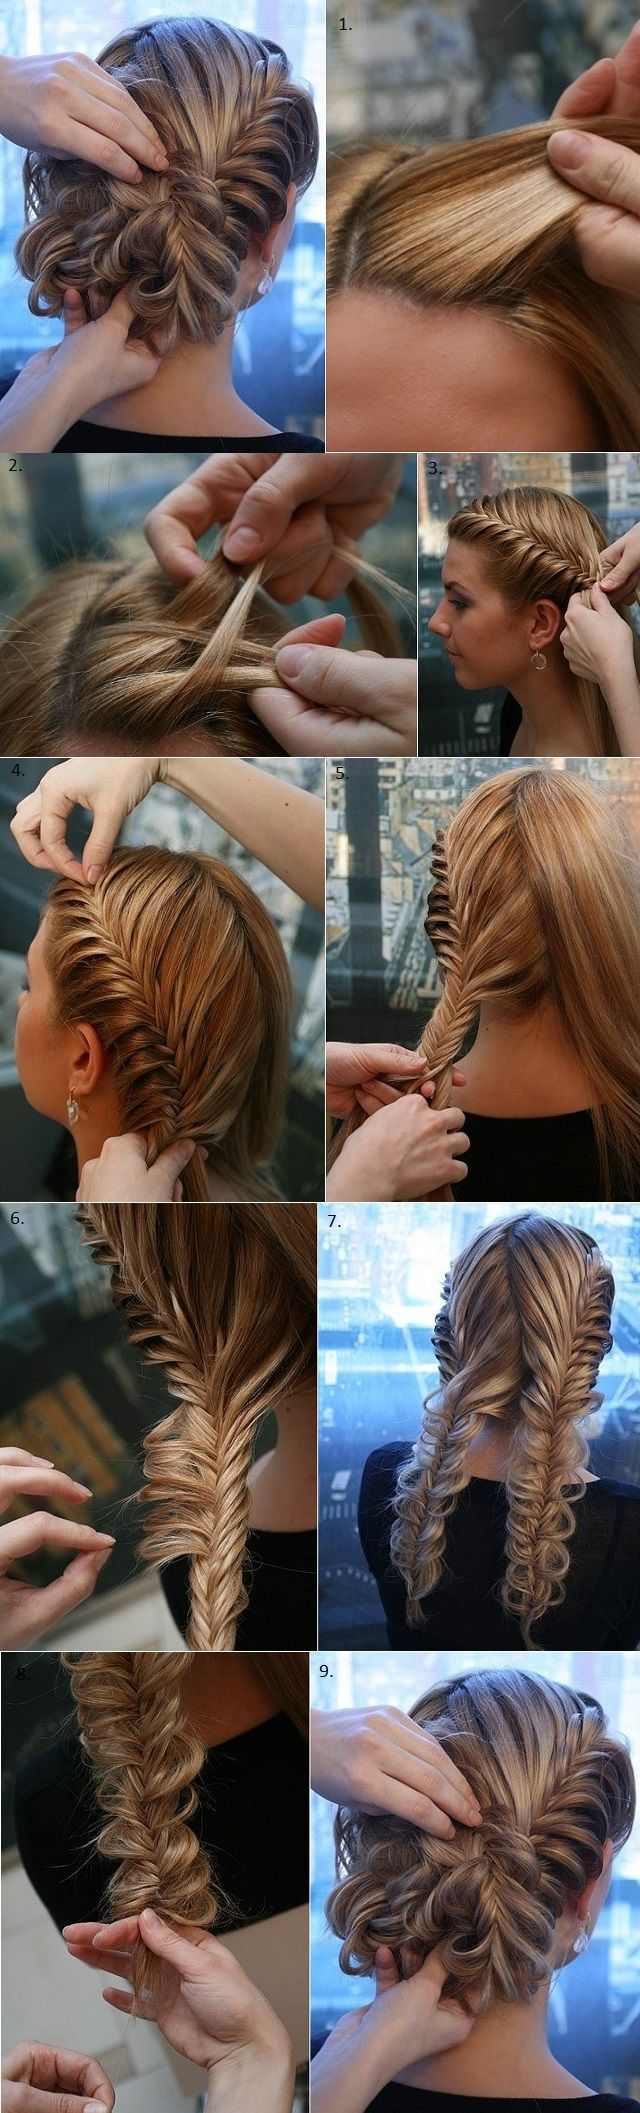 cute and easy braided hairstyle tutorials outfit trends